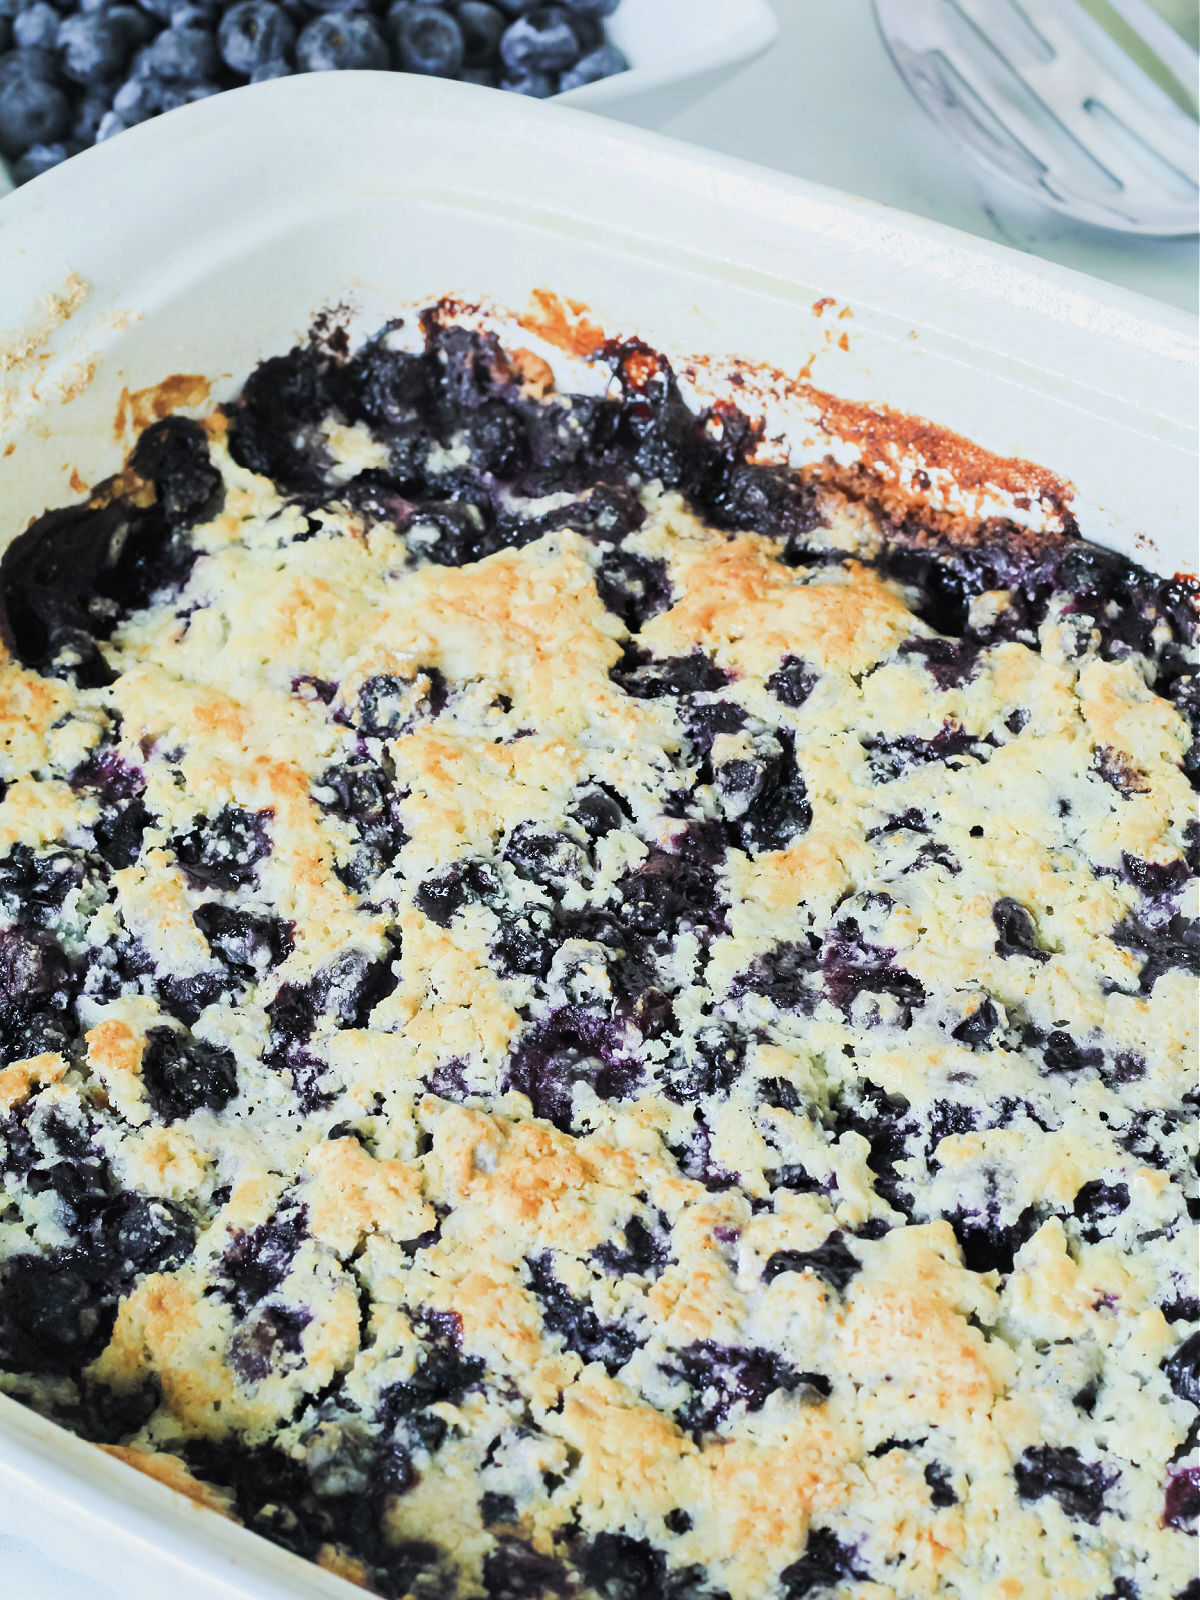 Baked blueberry cobbler in a white baking dish.